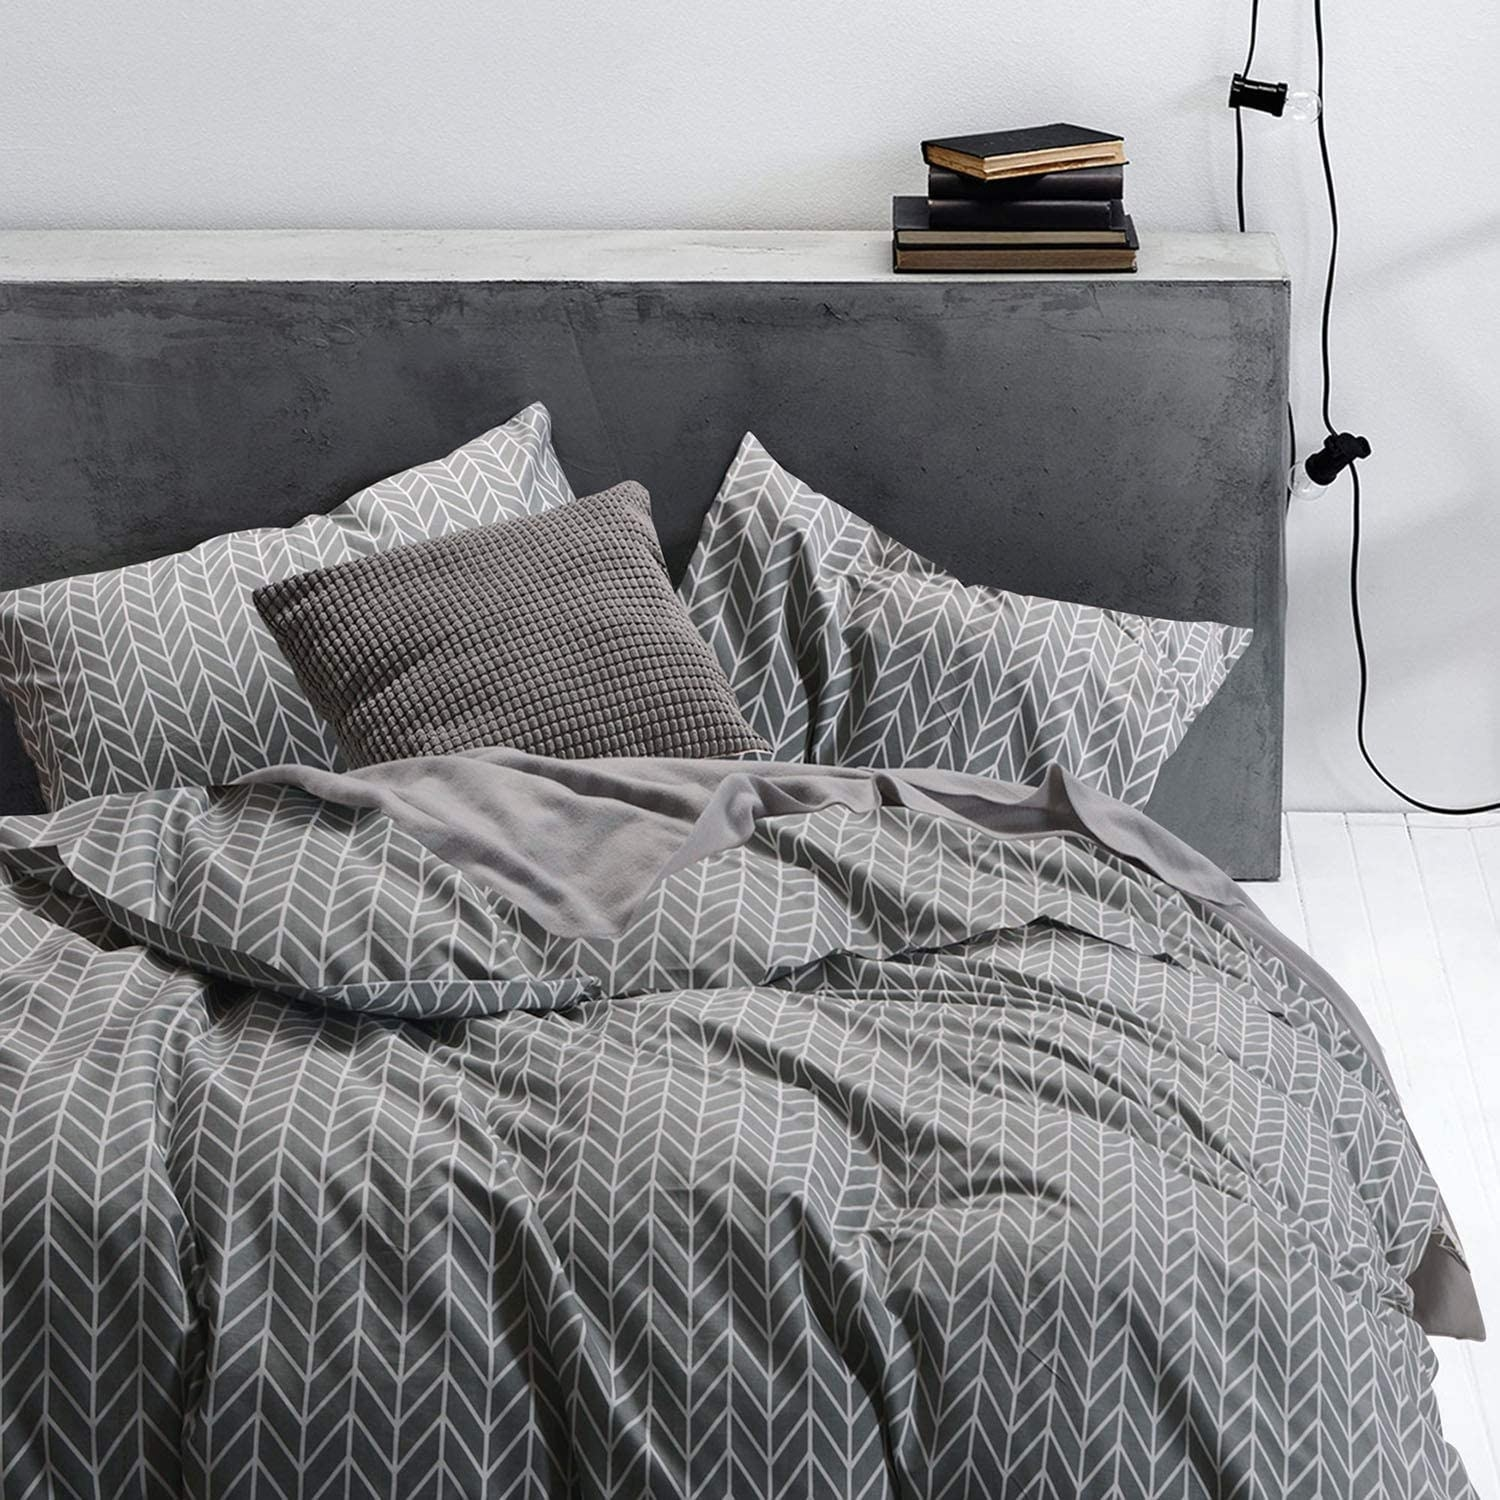 A bed dressed with the sheets is artfully messy in a minimalist bedroom